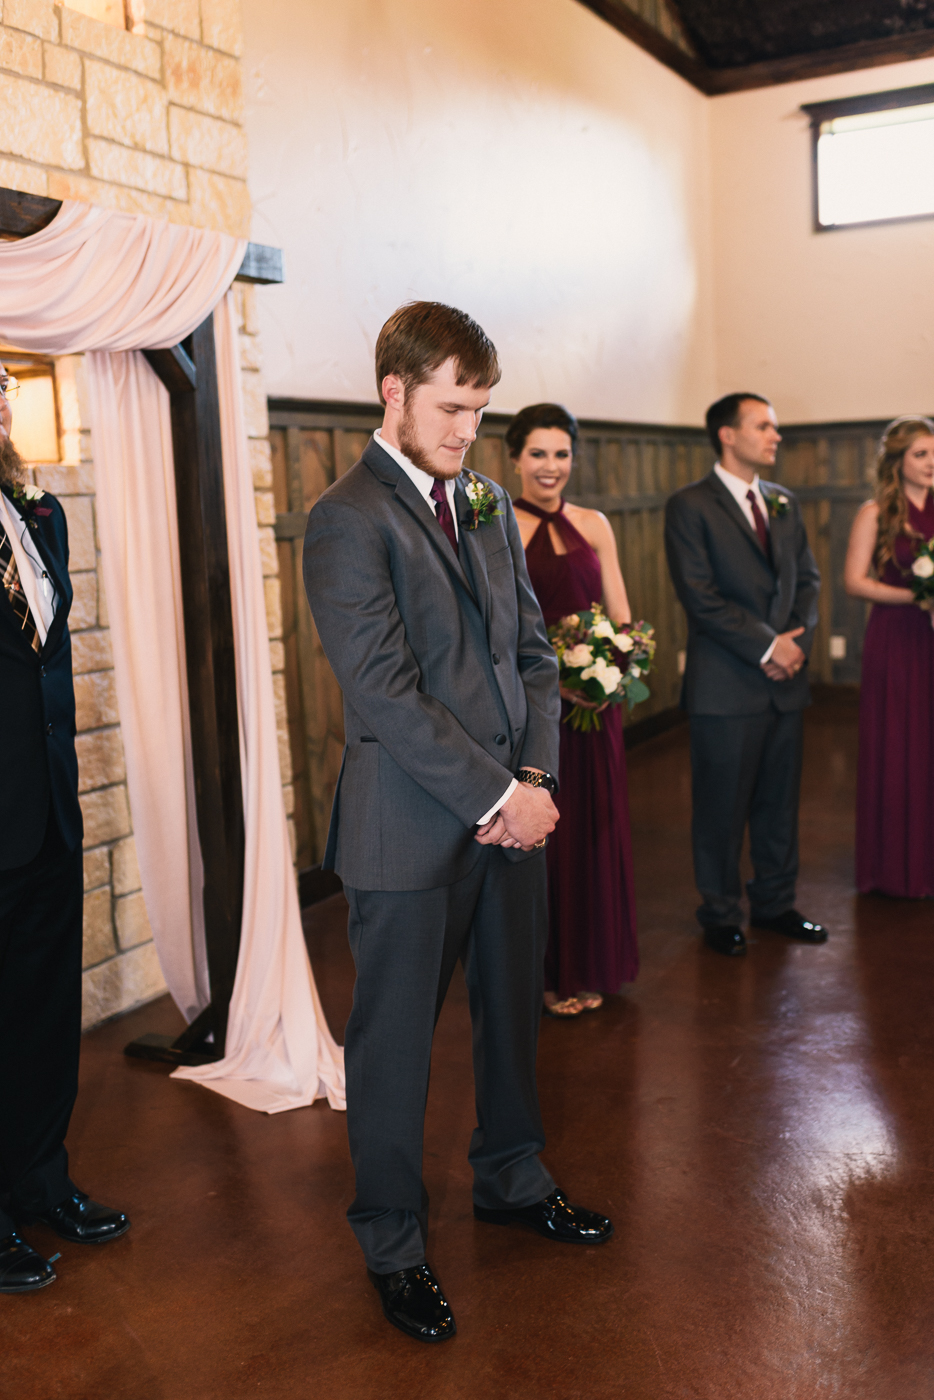 Groom at the altar wedding party dapper suit maroon wedding officiant